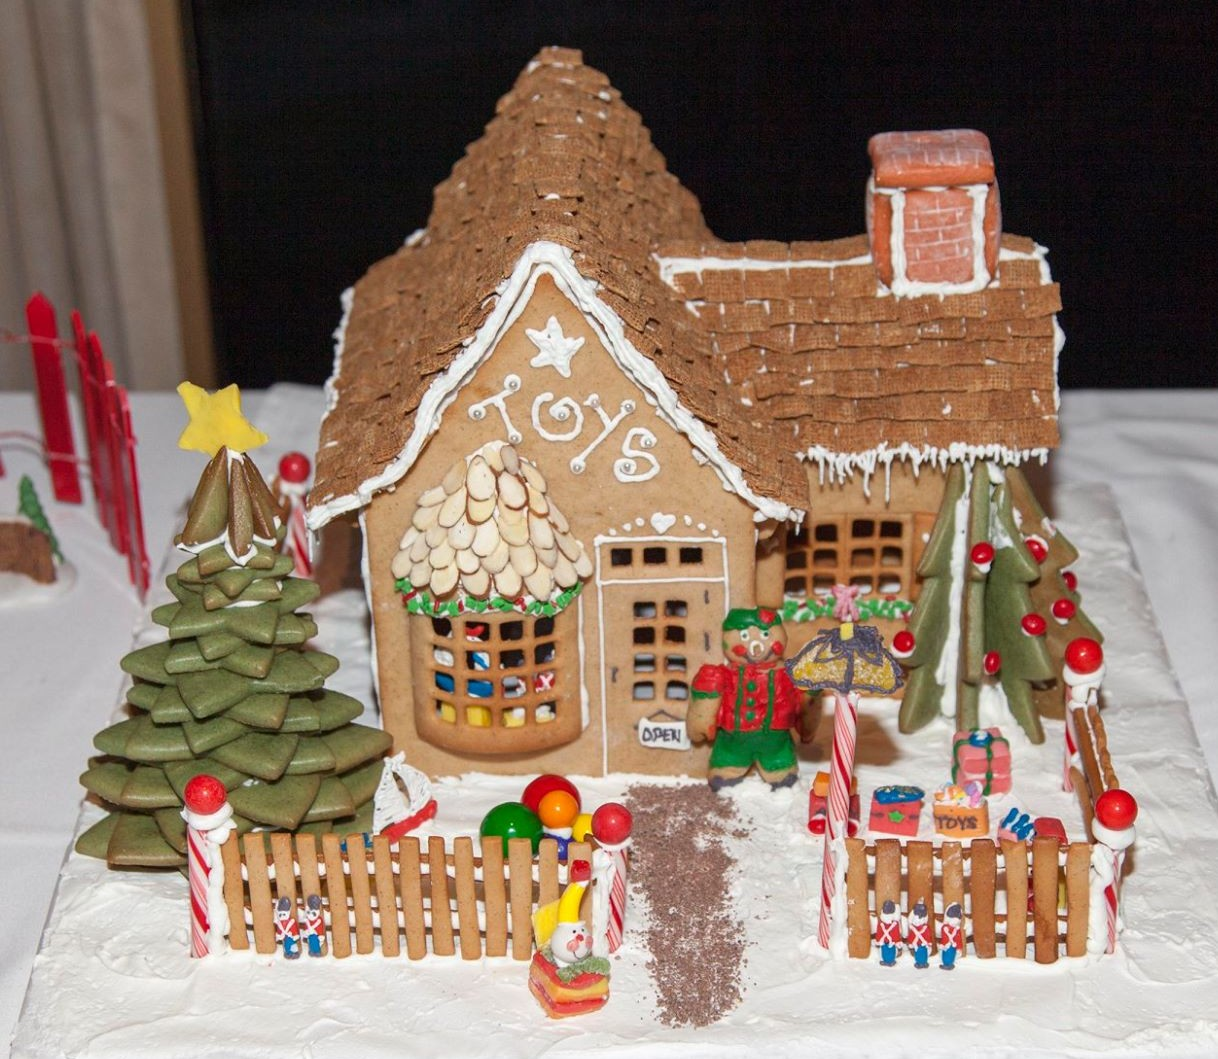 tremaglio gingerbread house